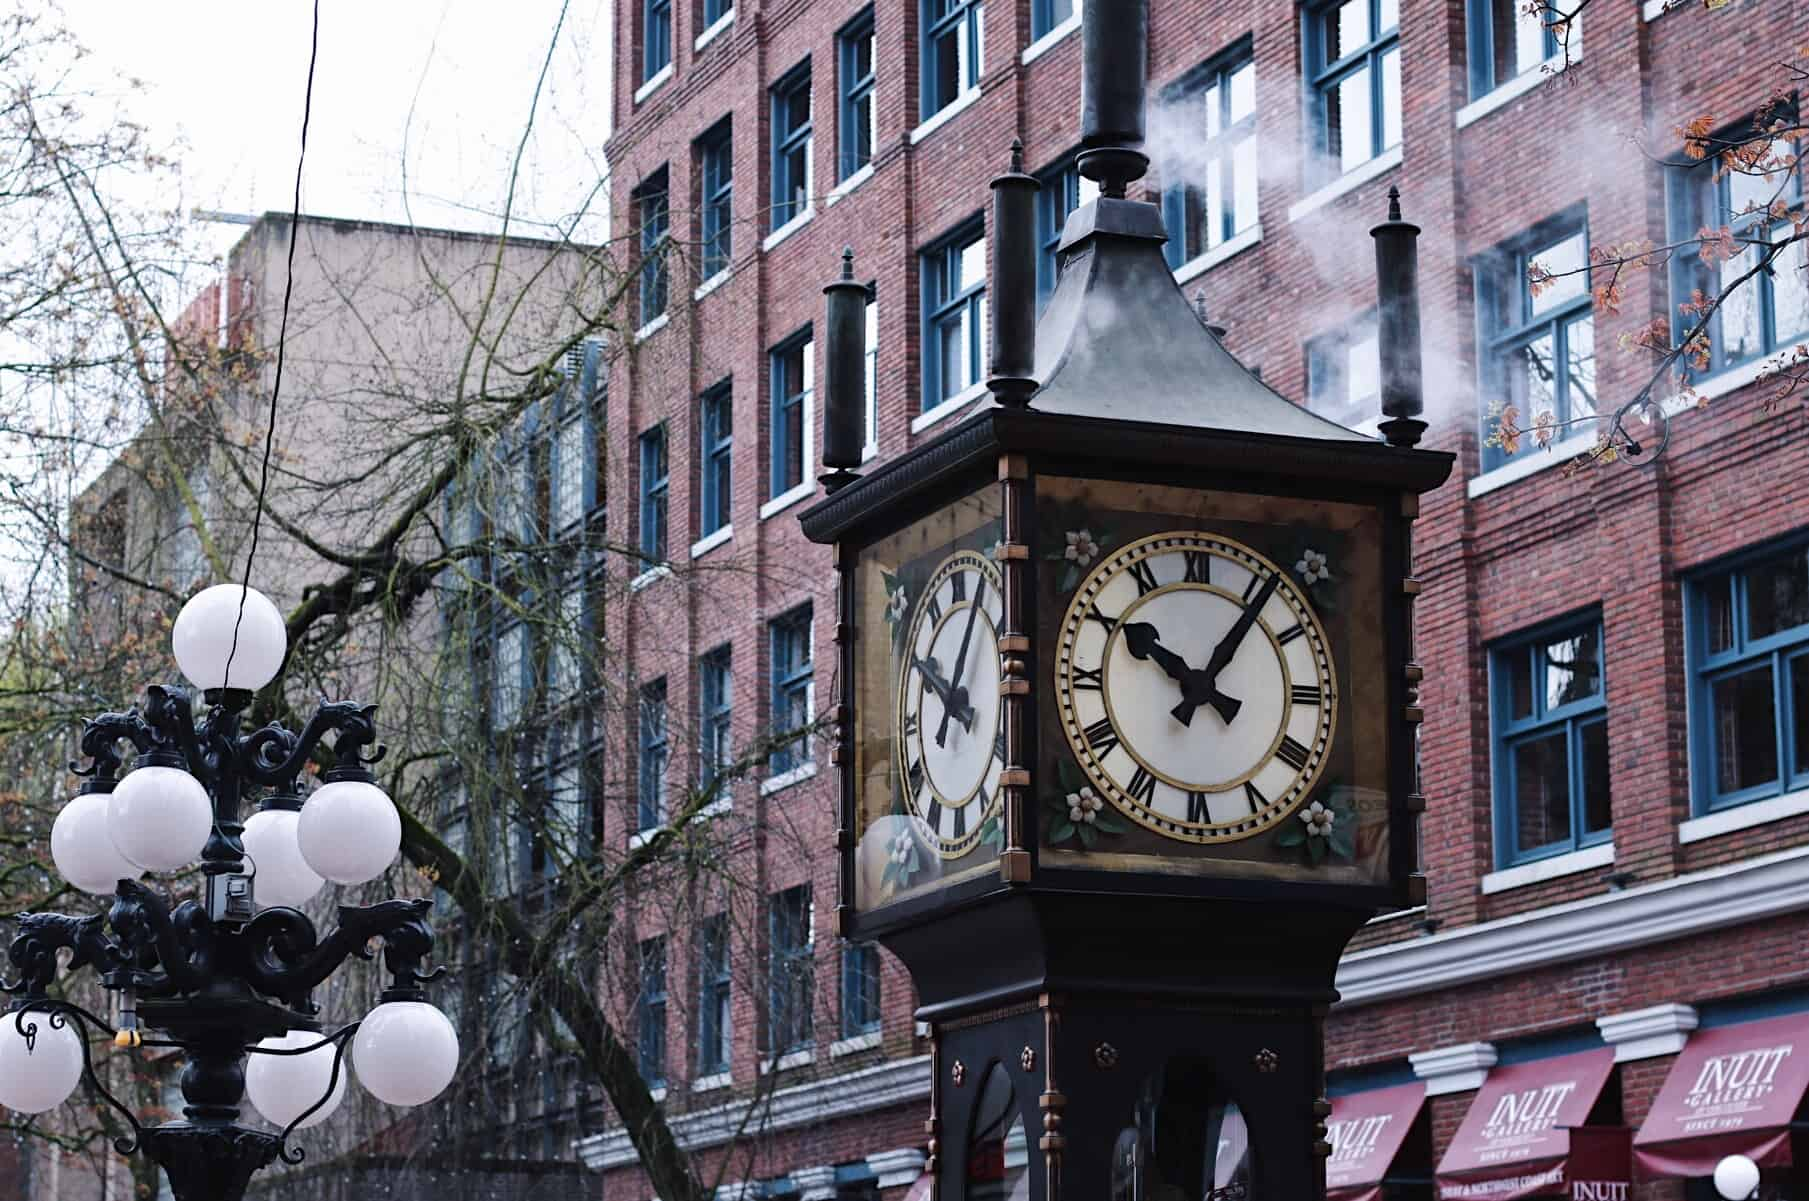 The Gastown Steam Clock is one of the only few steam clocks left in the world